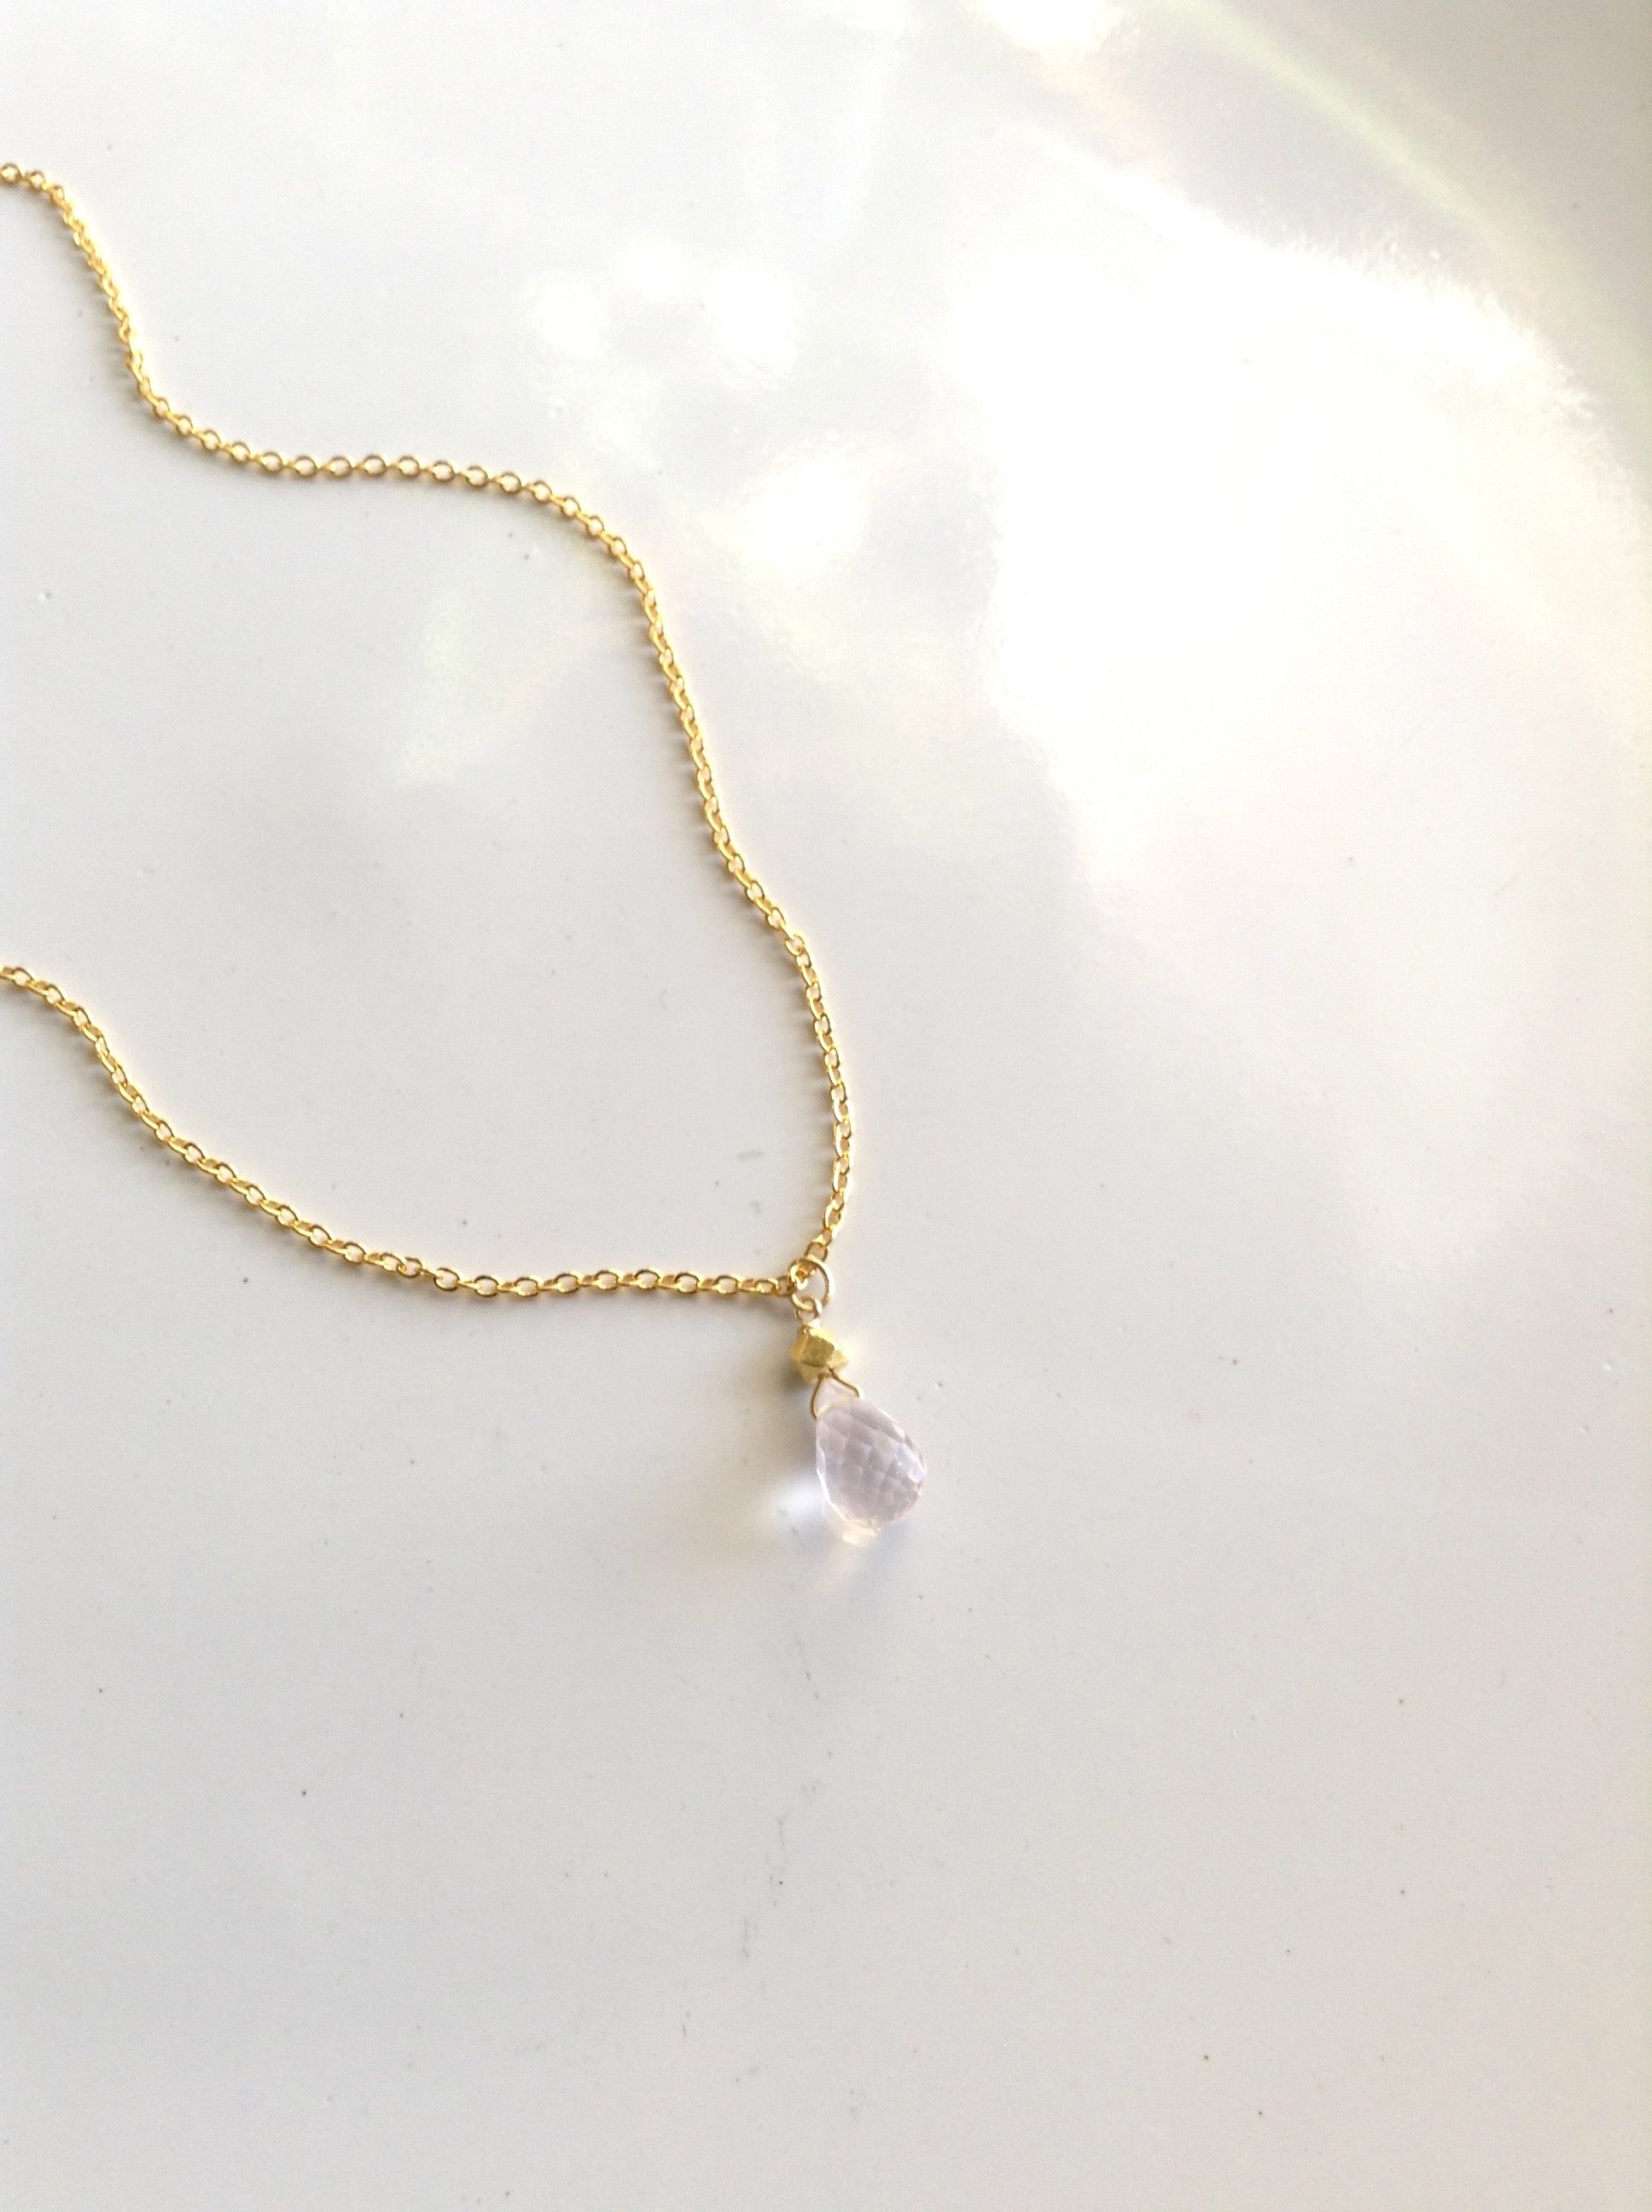 Sister In Law Gift Small Rose Quartz Teardrop Necklace | Meaningful Necklace | IB Jewelry